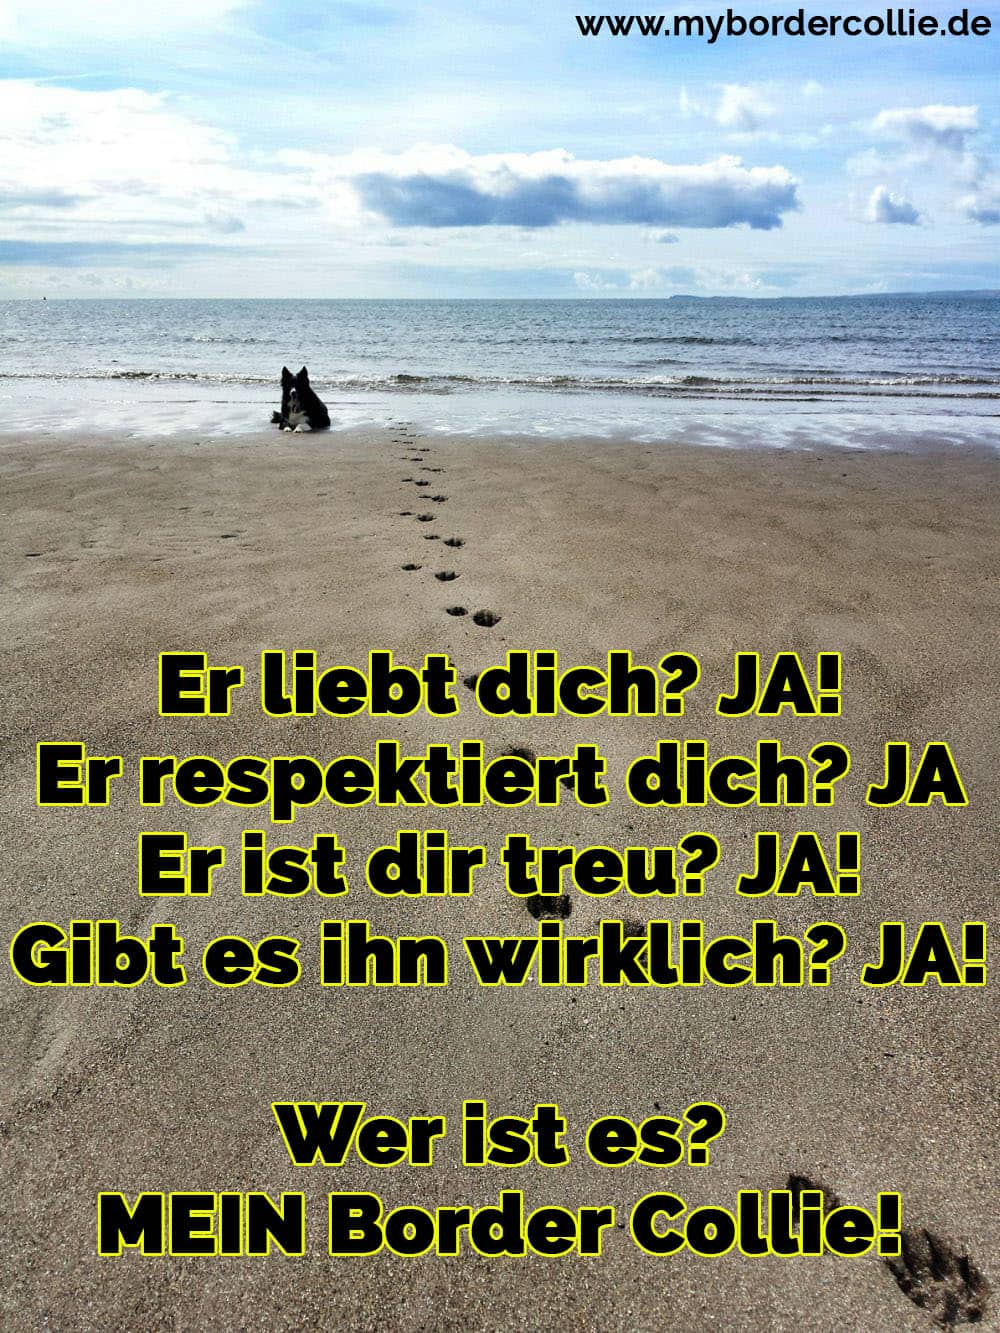 Ein Border Collie am Strand